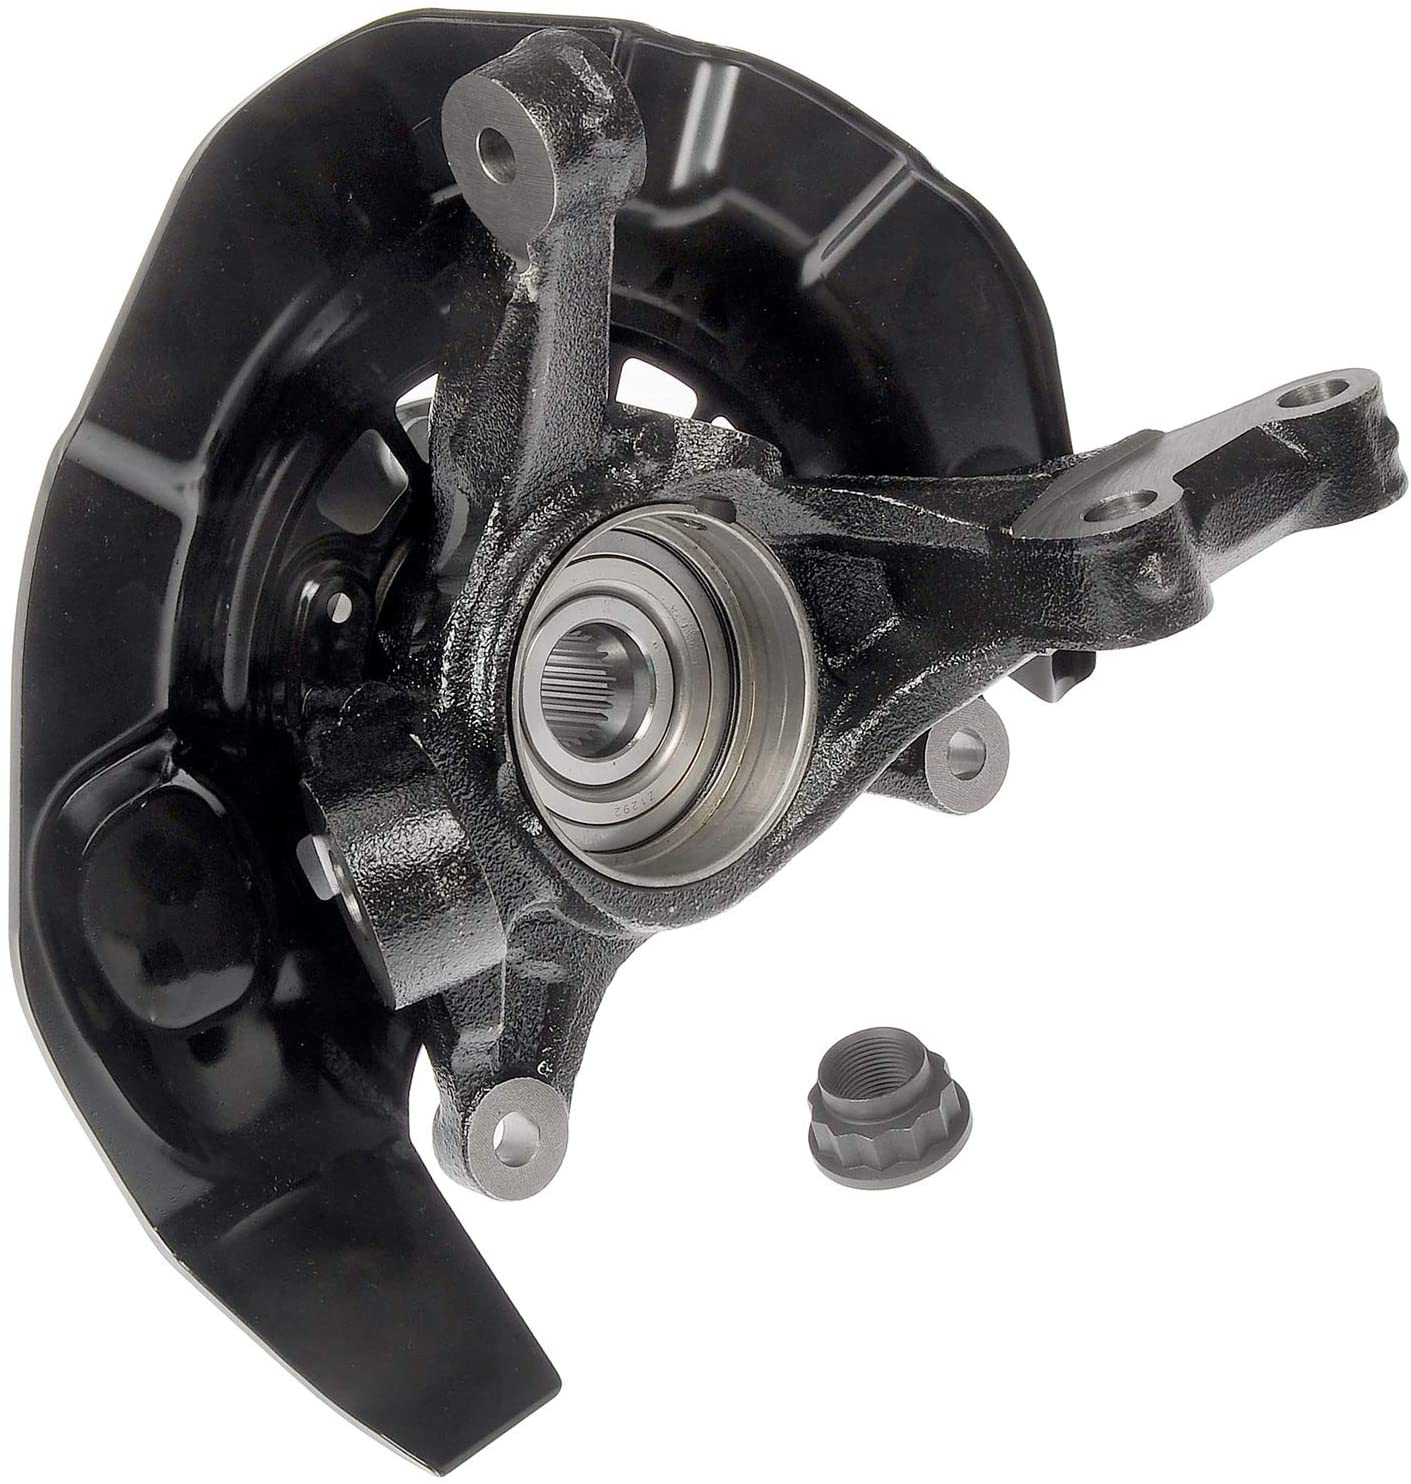 APDTY 142613 Front Left Loaded Knuckle Replaces 4778248020, 90080-36193